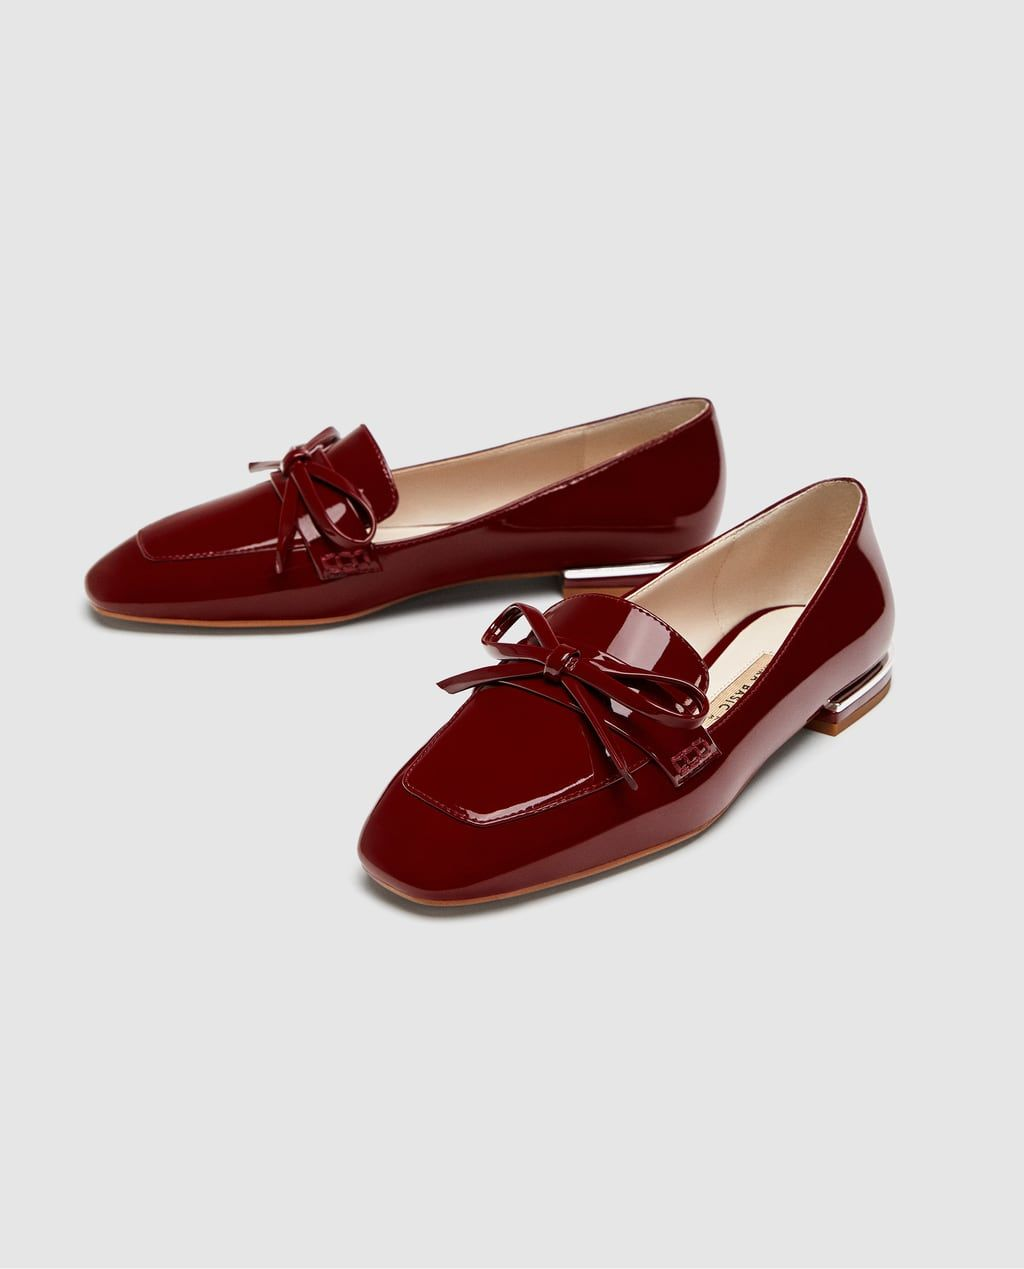 33e615d2bfc FAUX PATENT LEATHER LOAFERS WITH BOW DETAIL-Flats-SHOES-WOMAN